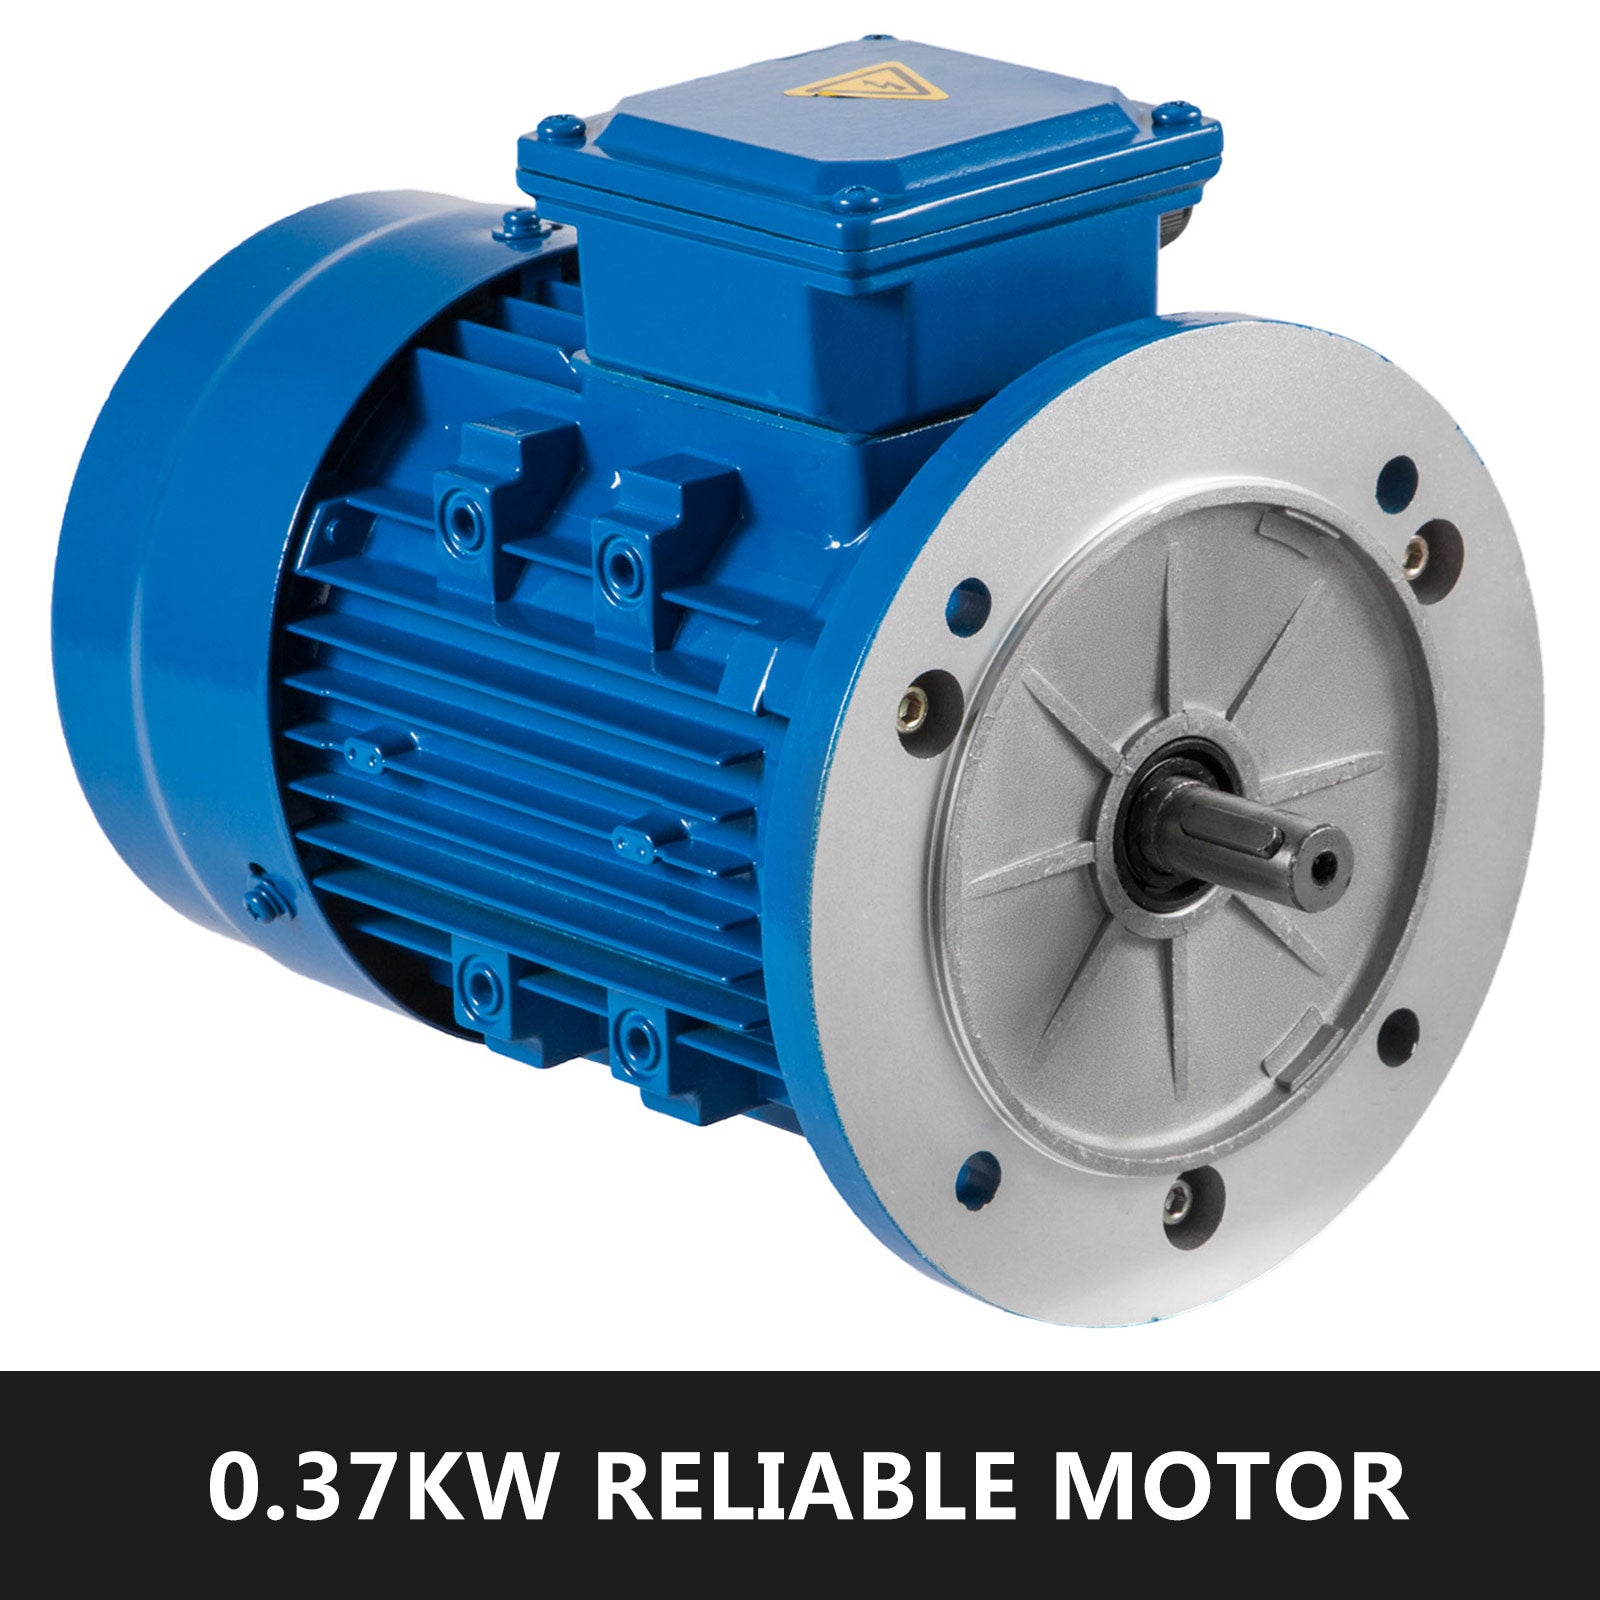 1/2 Hp Electric Motor Three Phase 0.37 Kw Rated Speed 3000 Rpm Standard Motor